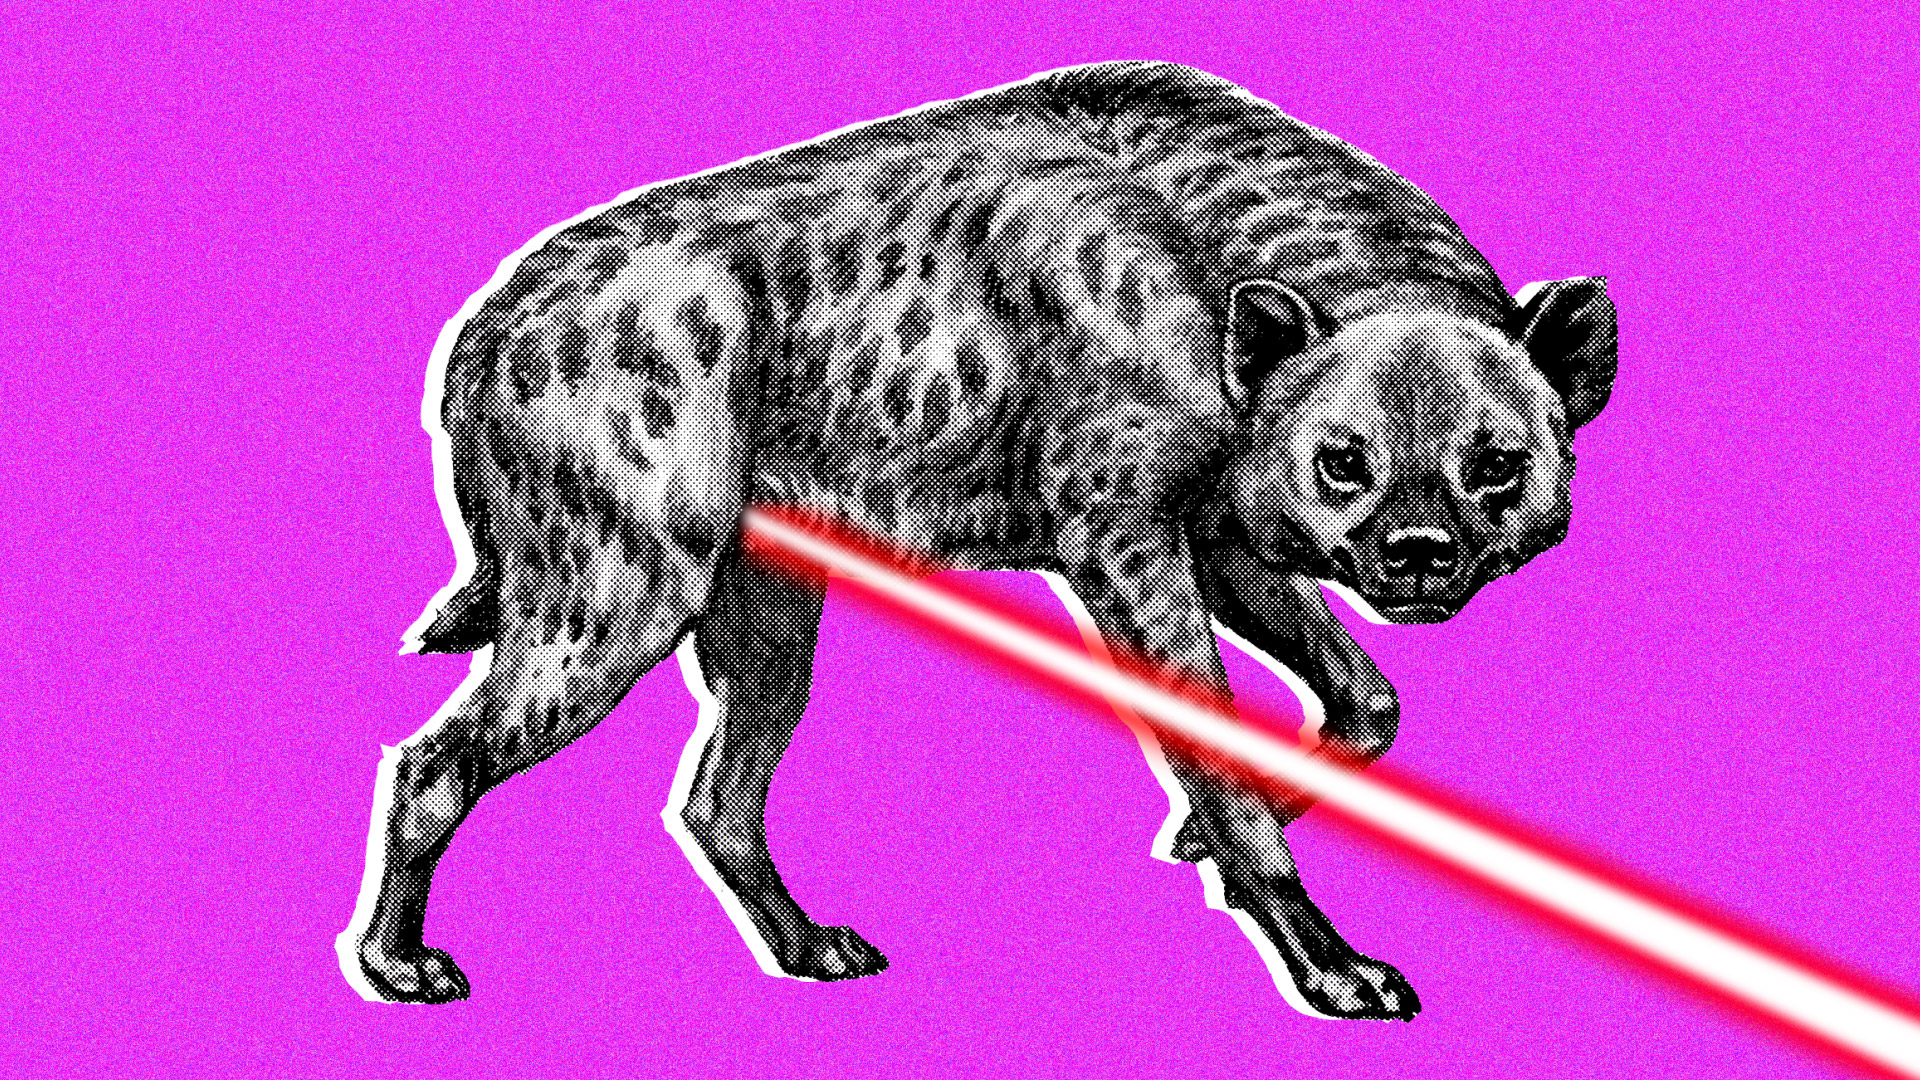 Animal Jaguar Sex Porn the extraordinary genitalia of female spotted hyenas - big think